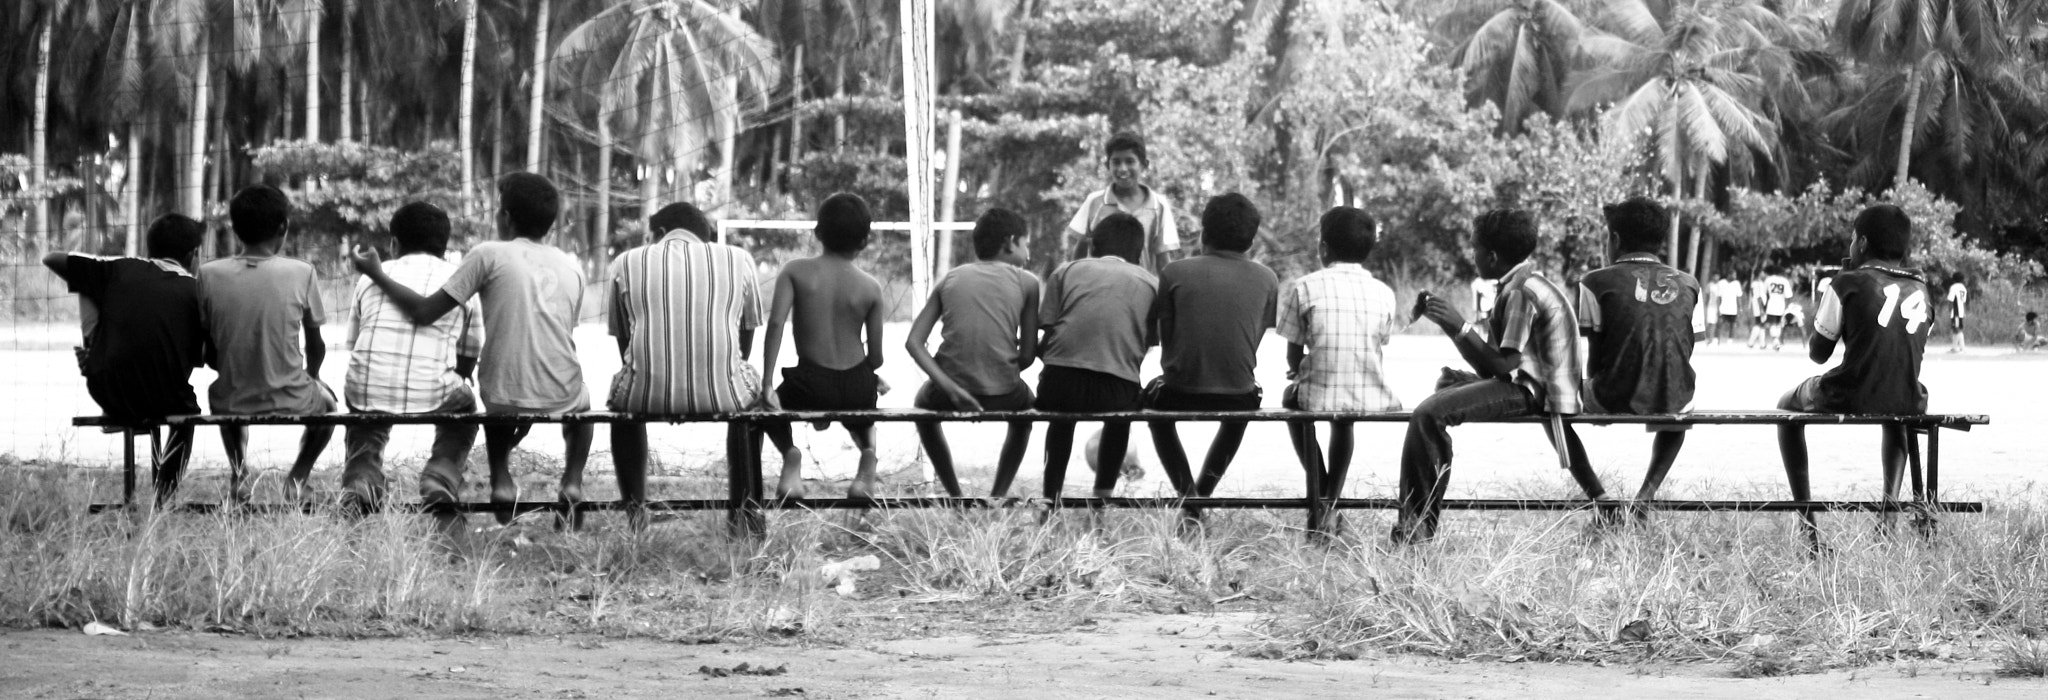 Photograph Maldivian Football Match by Emanuele Colombo on 500px